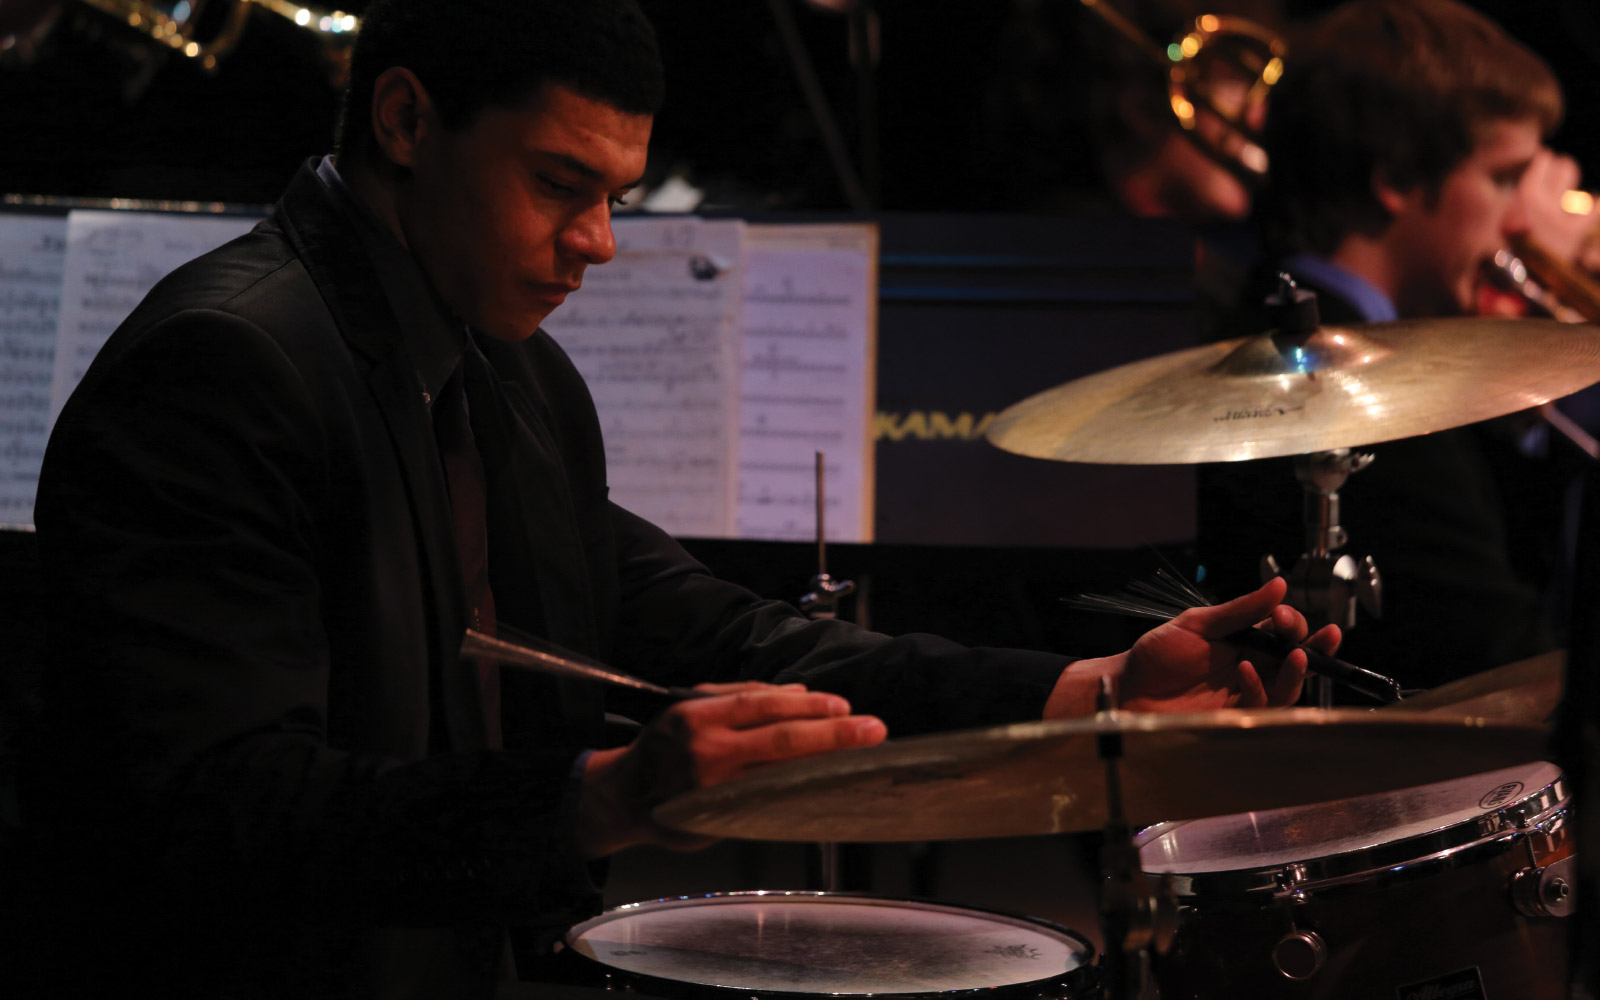 music-slideshow_jazzband4